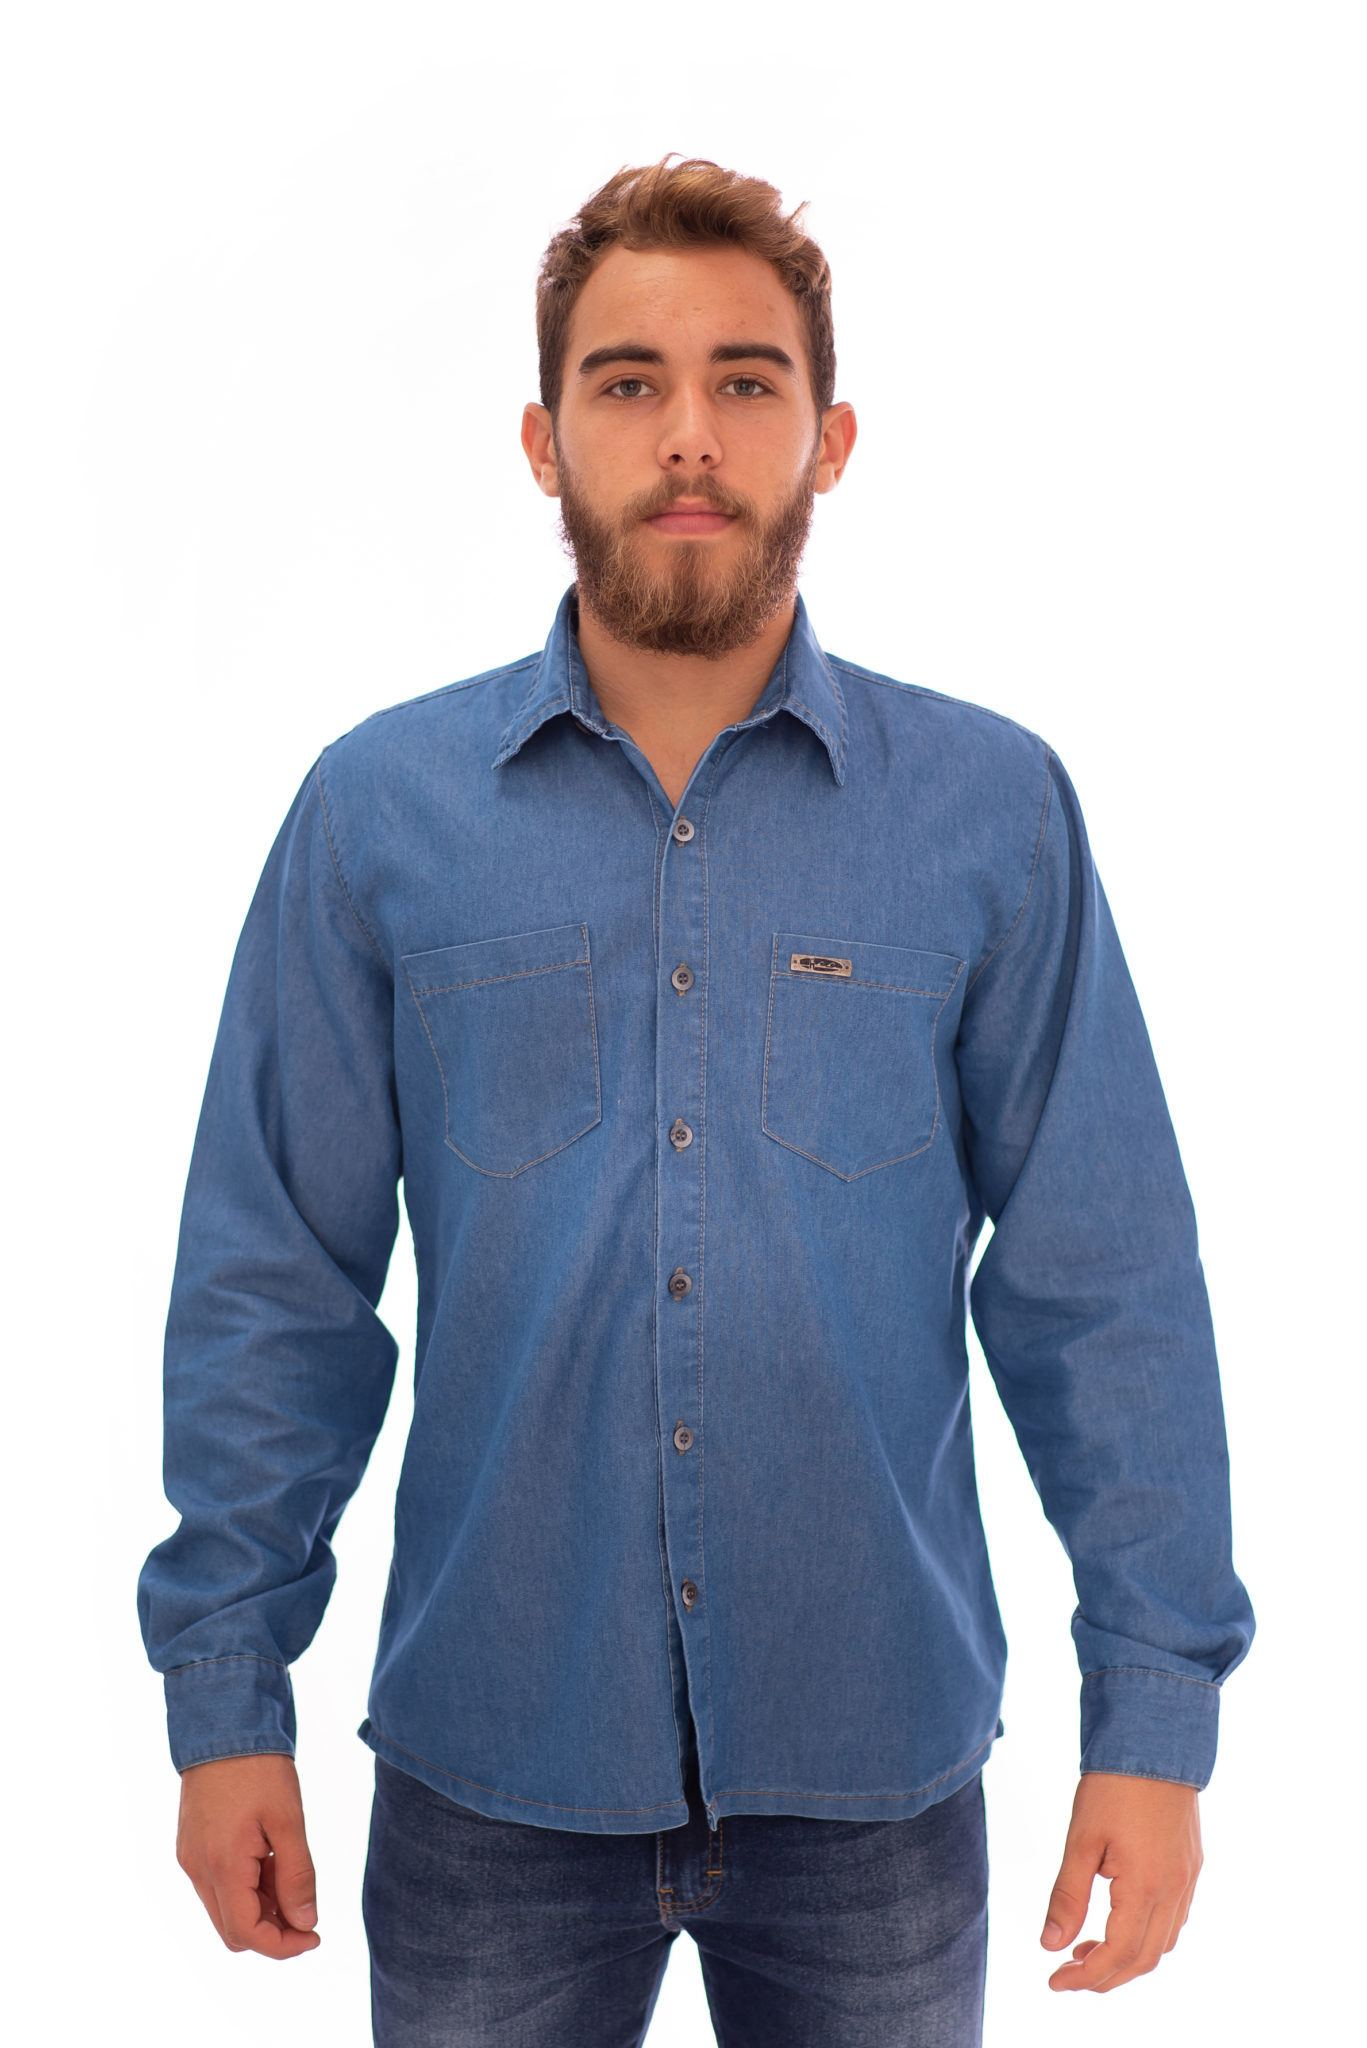 CAMISA JEANS AEE SURF MASCULINA REF. 405